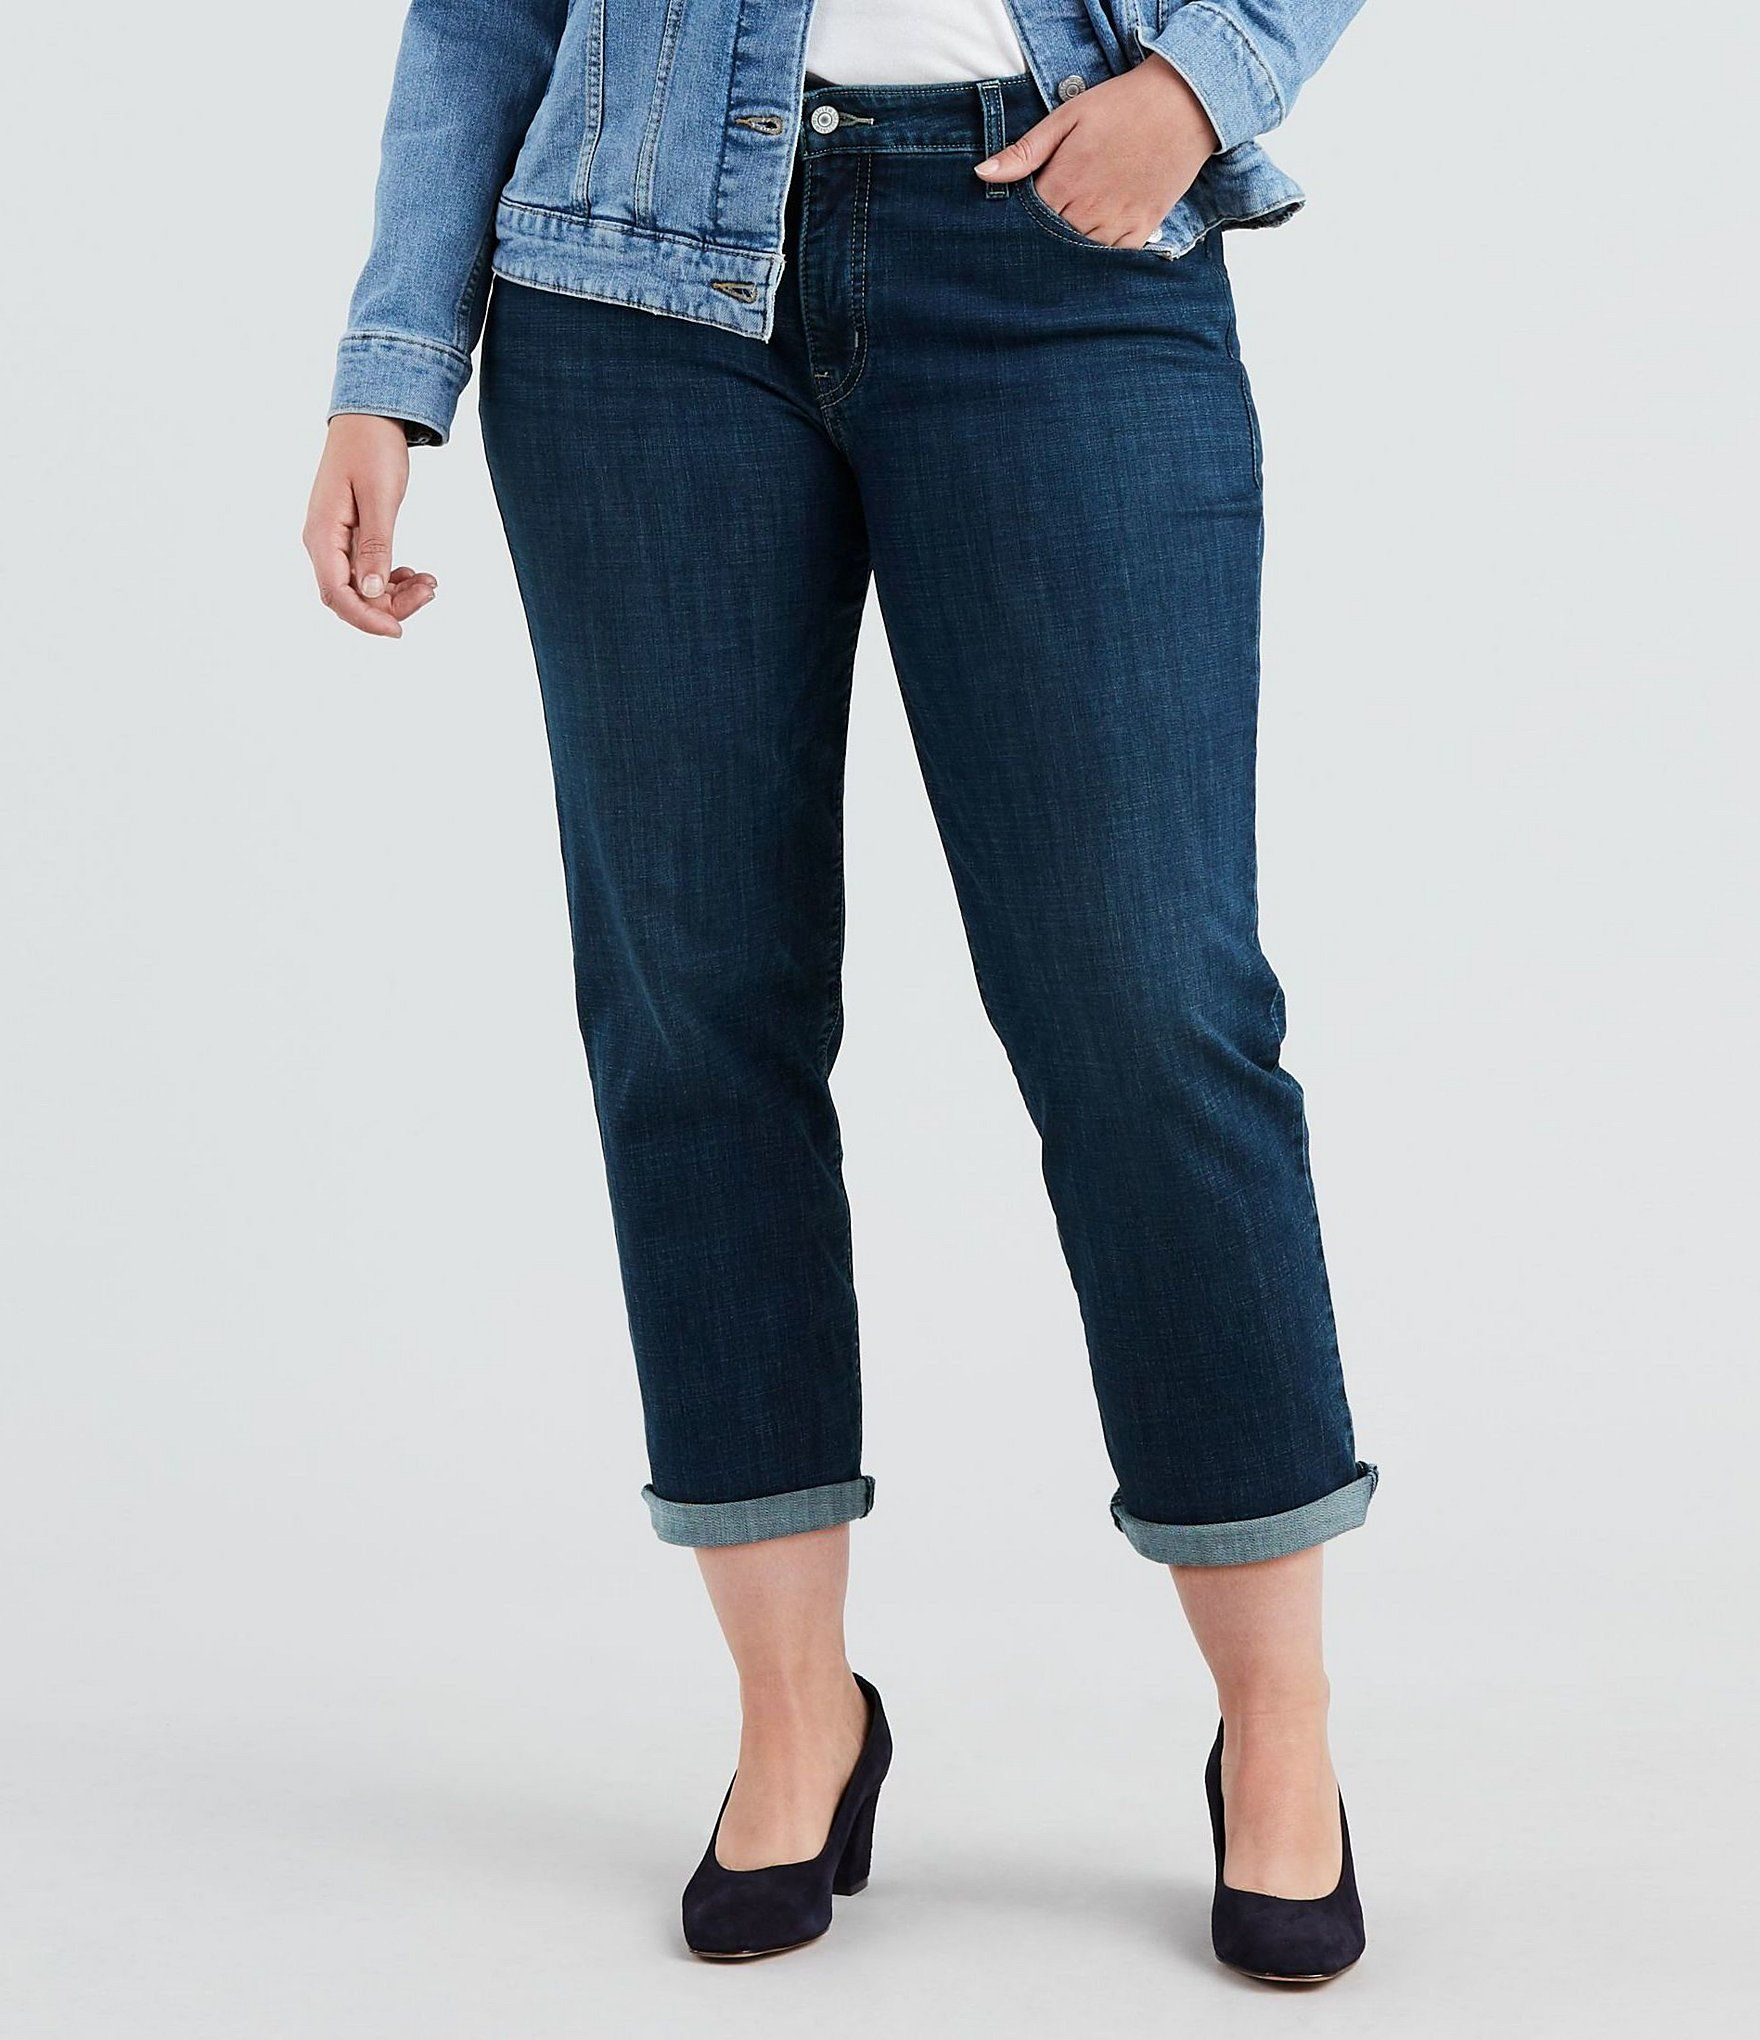 Levi's Plus Boyfriend Jeans – Dk Everyday 18W